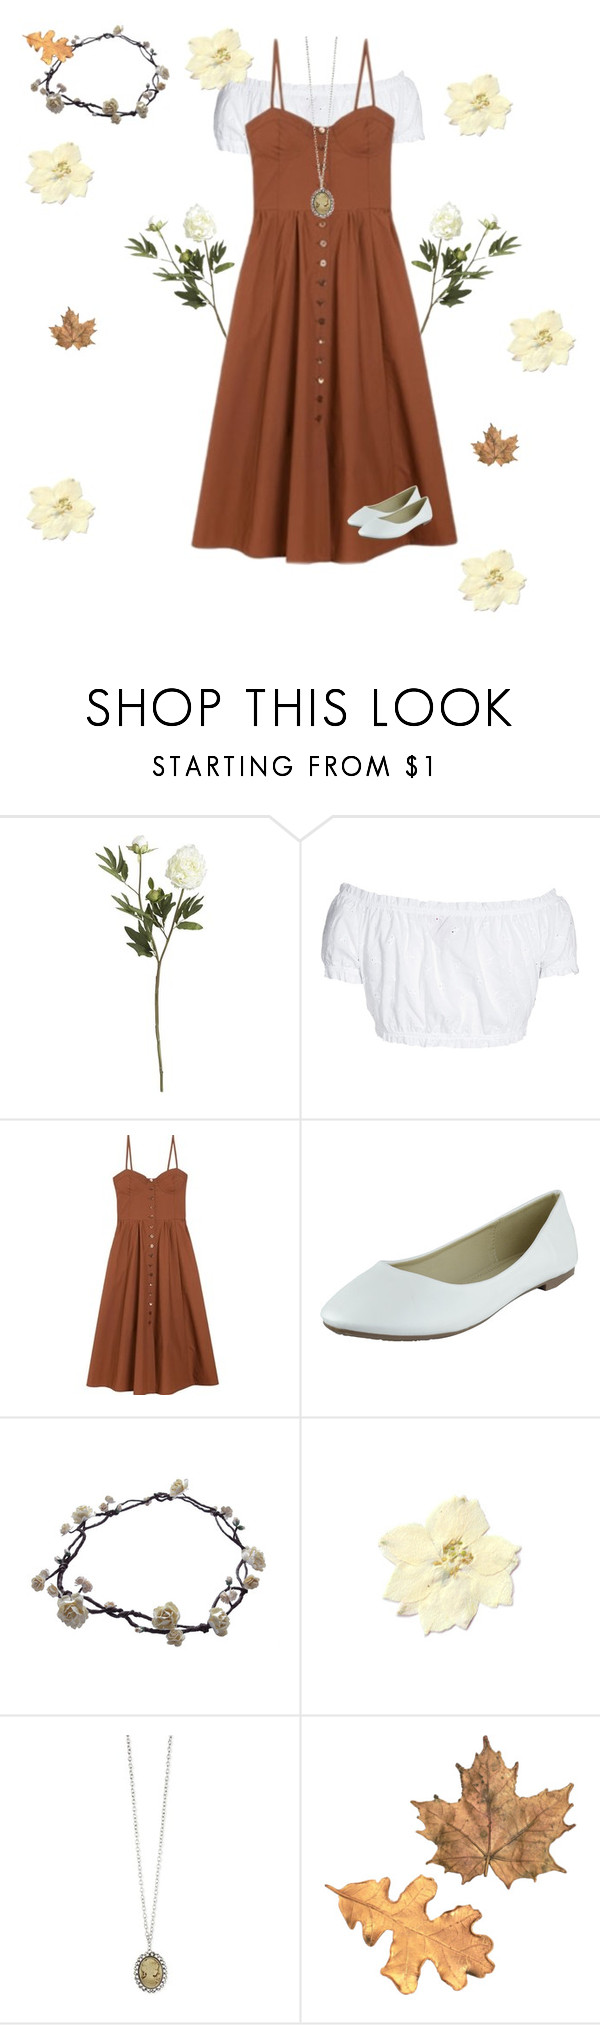 """""""🍂"""" by getout ❤ liked on Polyvore featuring Crate and Barrel, GERMAN PRINCESS, Maryam Nassir Zadeh and Z Designs"""